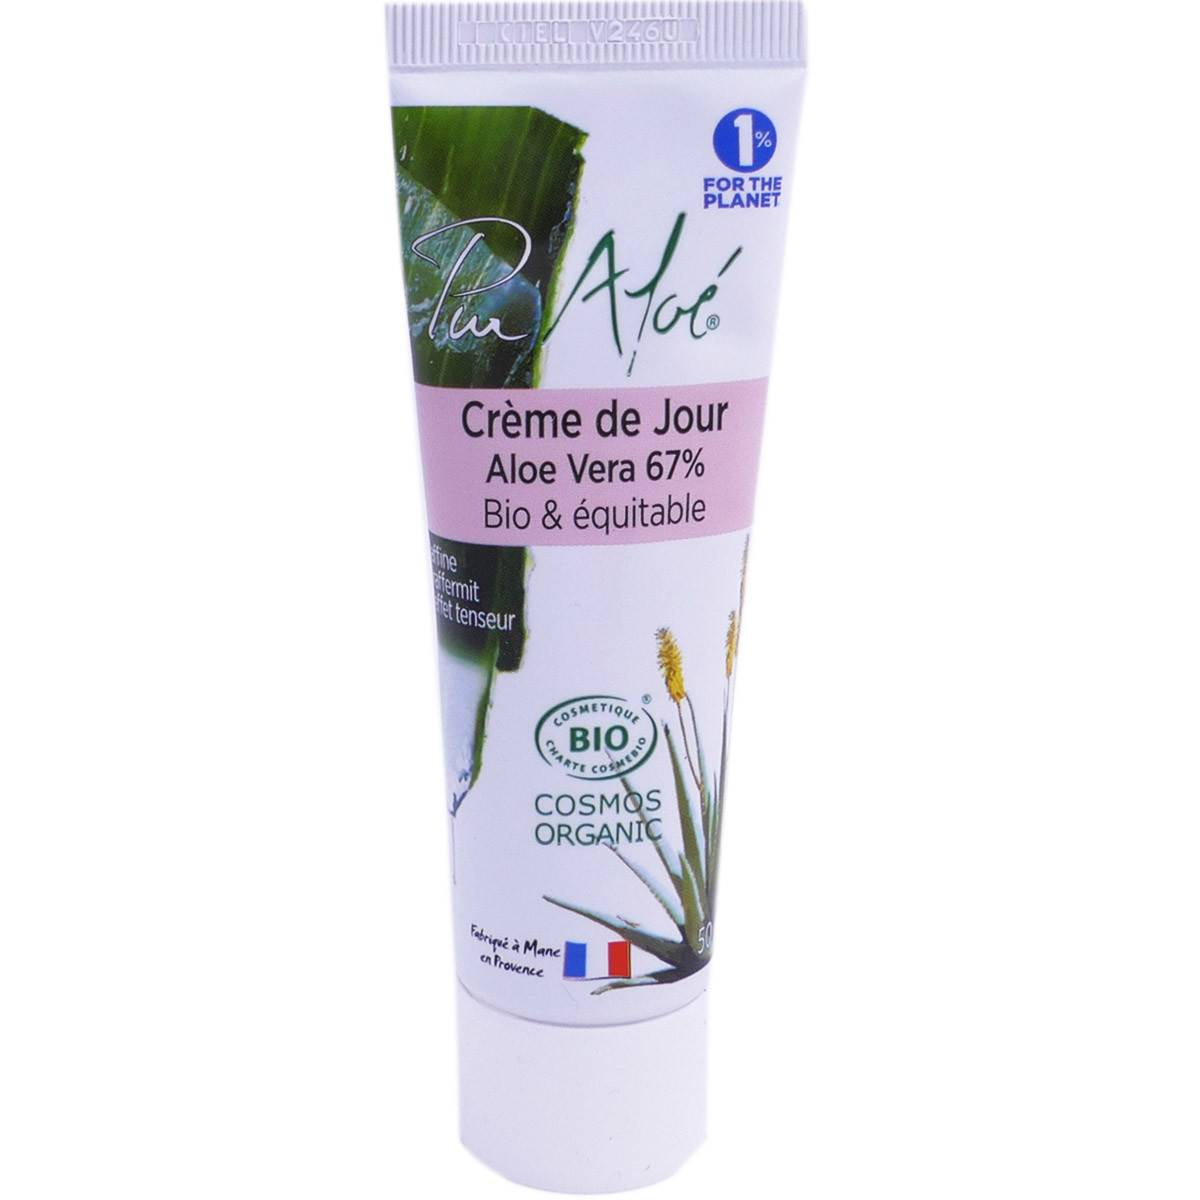 PHARM UP Pur aloe creme de jour aloe vera bio 50ml